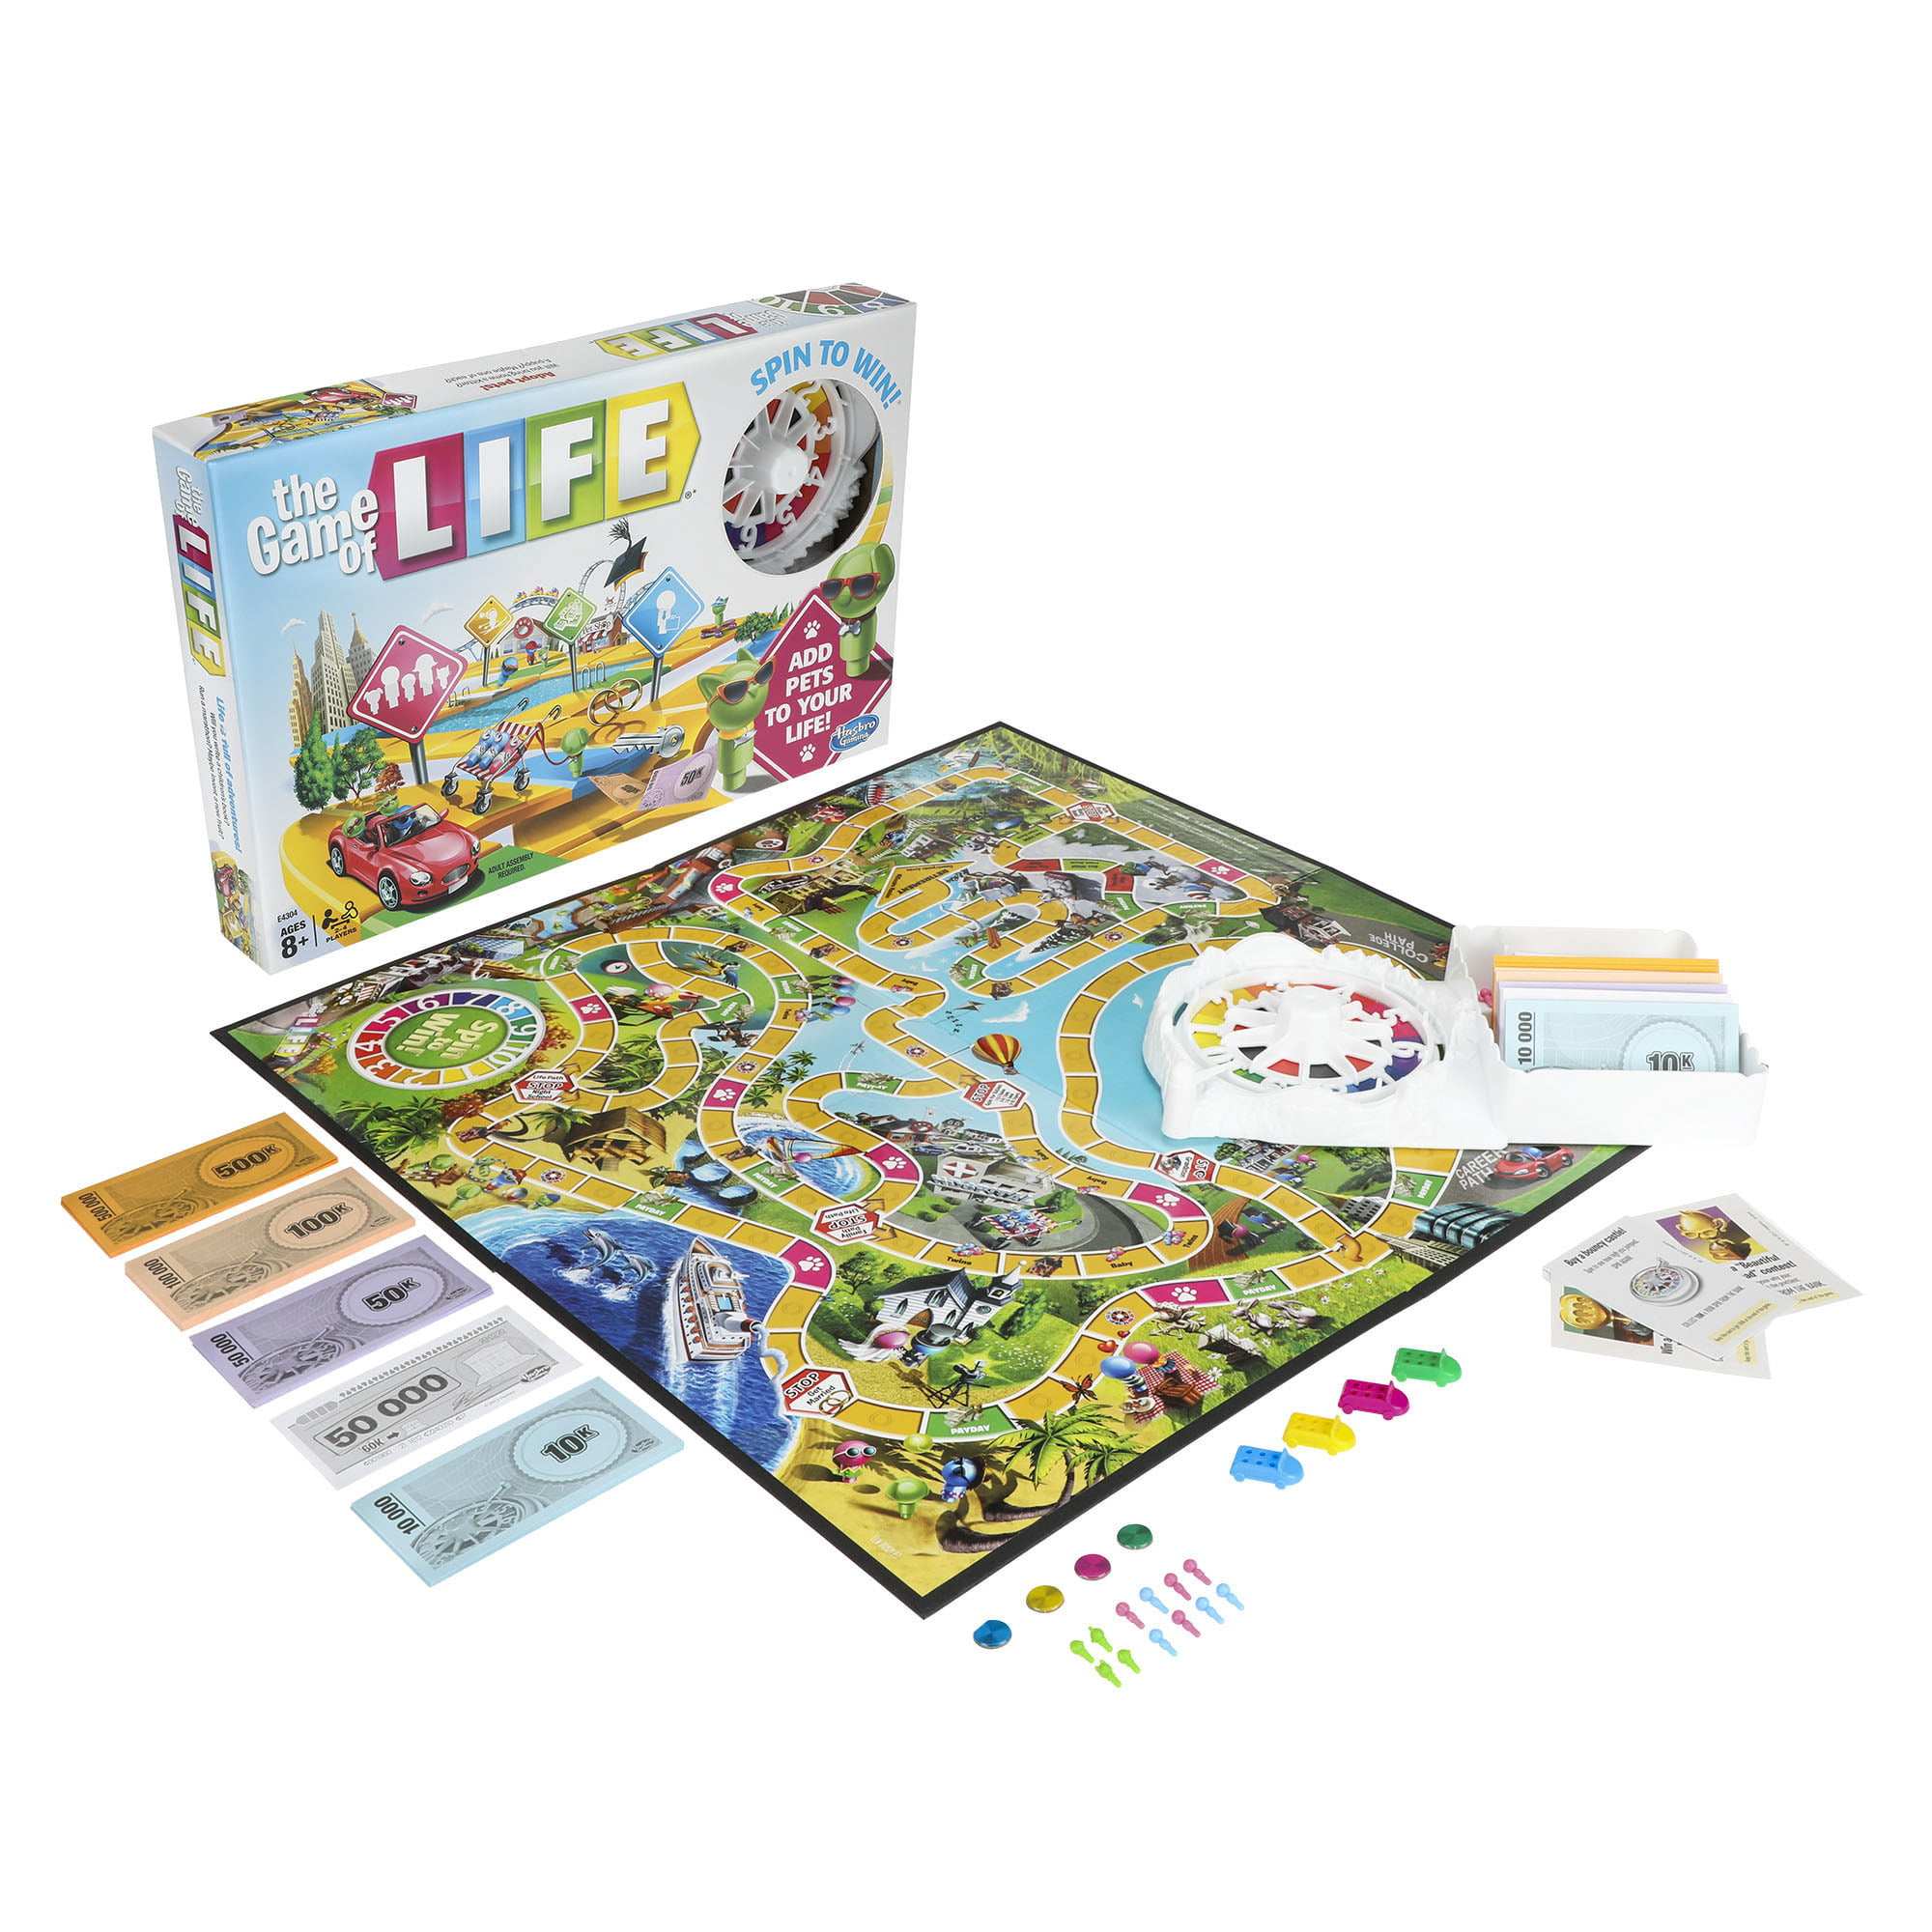 The Game of Life game by Hasbro